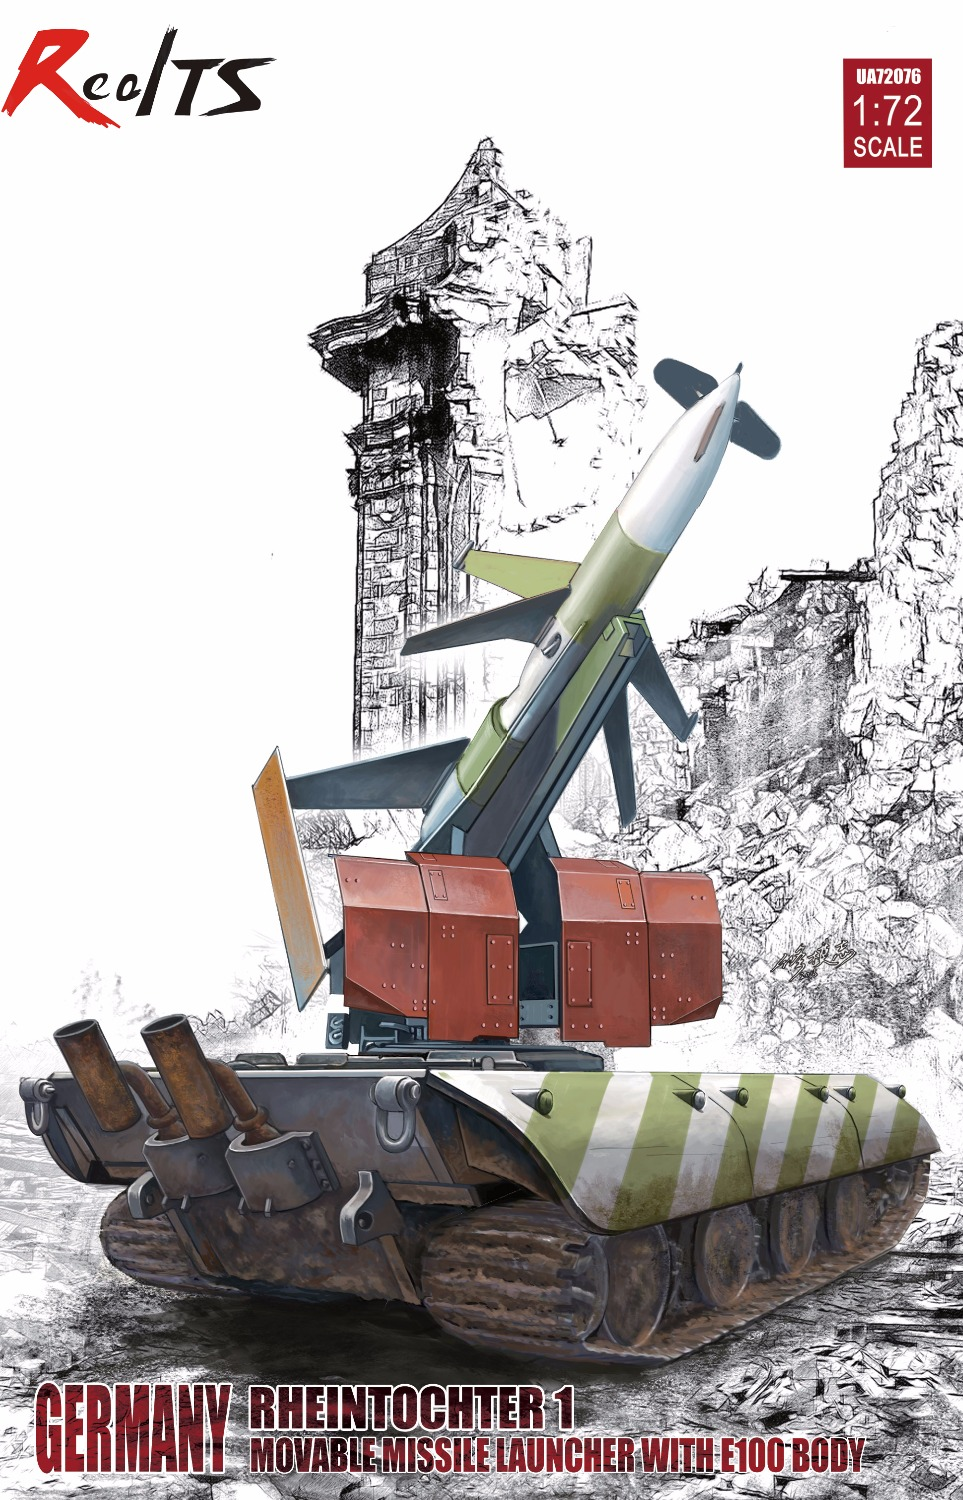 RealTS Modelcollect UA72076 1/72 Germany Rheintochter 1 movable Missile launch